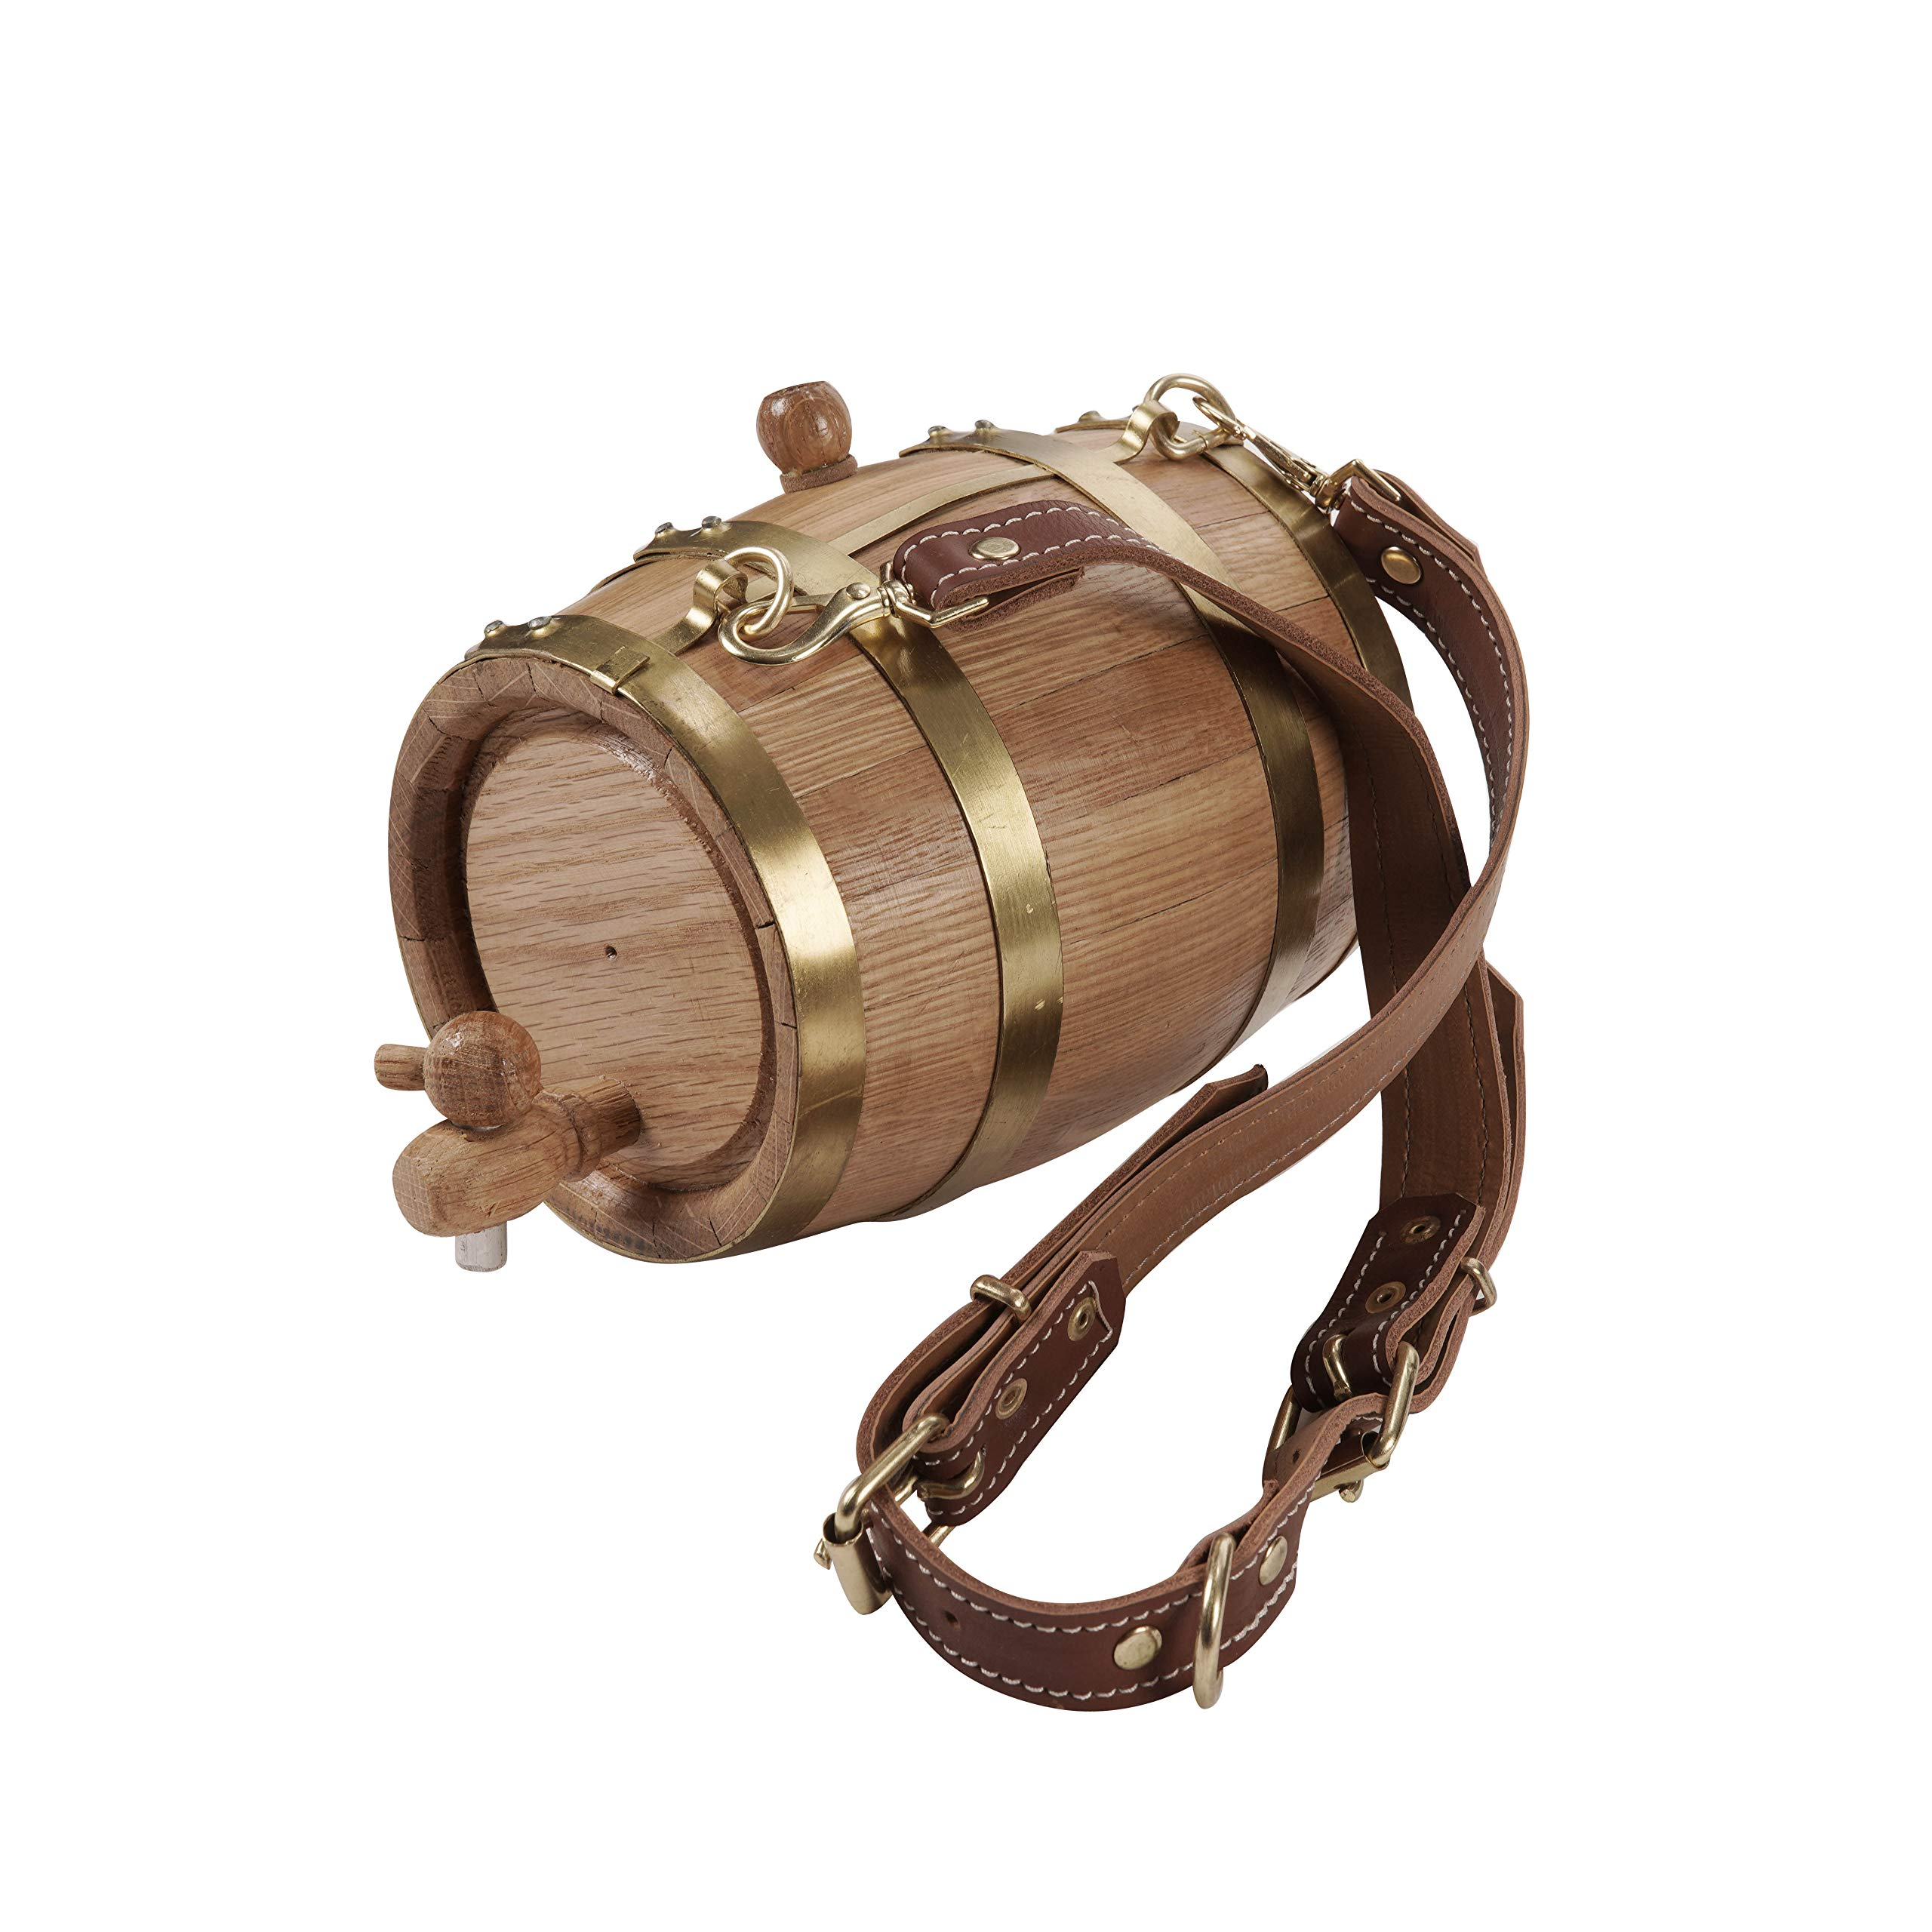 KegWorks St. Bernard Dog Collar Wood Rescue Barrel – Brass Bands – 1 Liter Capacity